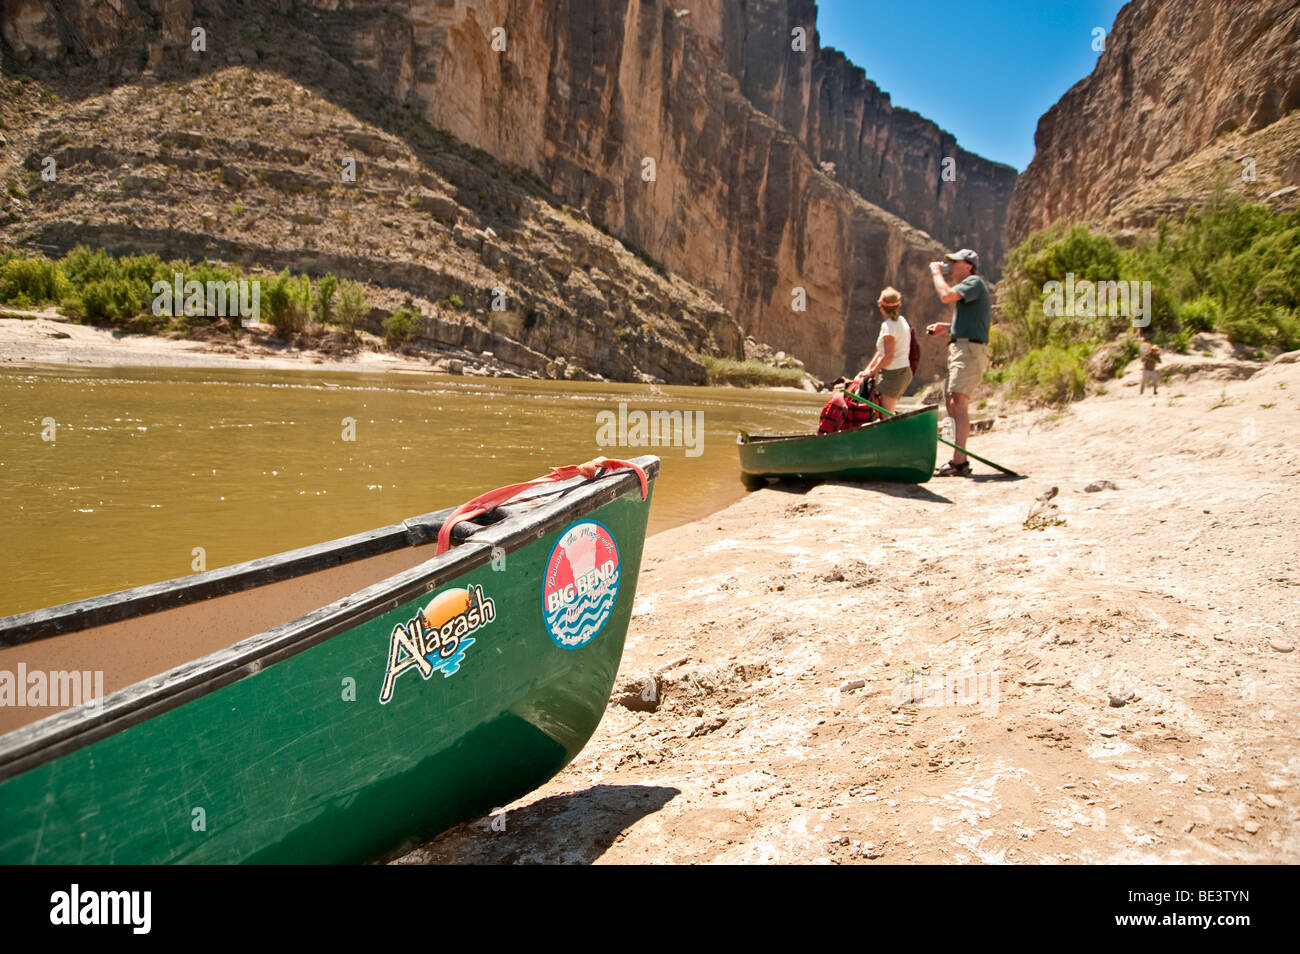 Traveler prepare for a canoe trip up Santa Elena canyon on the Rio Grand river in Big Bend National Park, Texas, - Stock Image